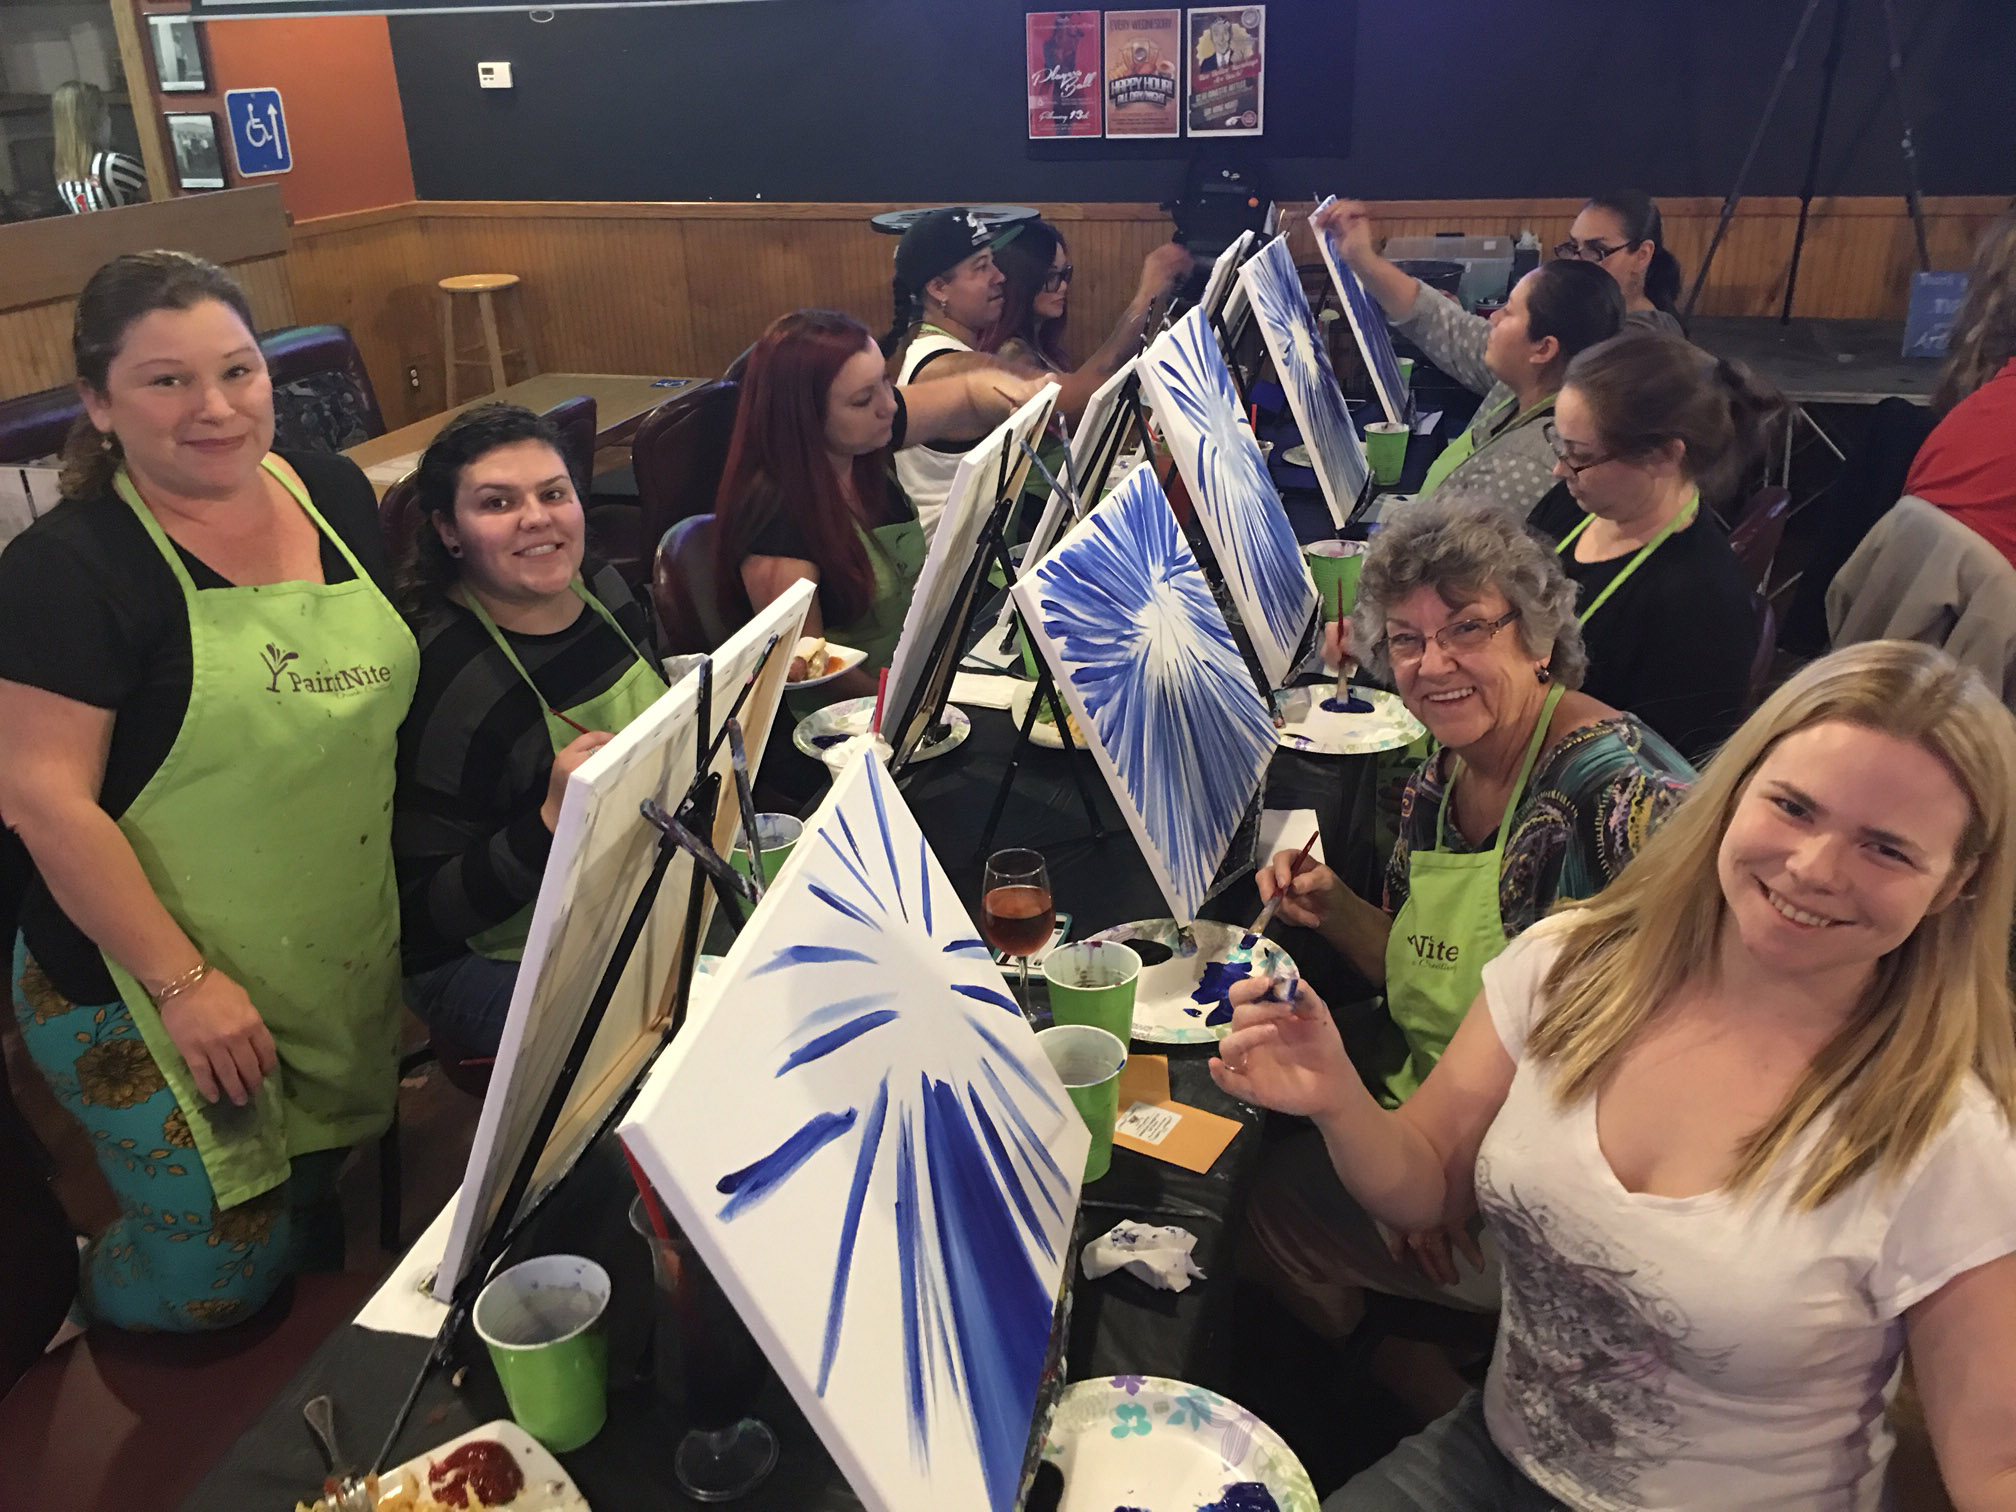 Paint Nite - Family out together making under water silhouette paintings. With wine!